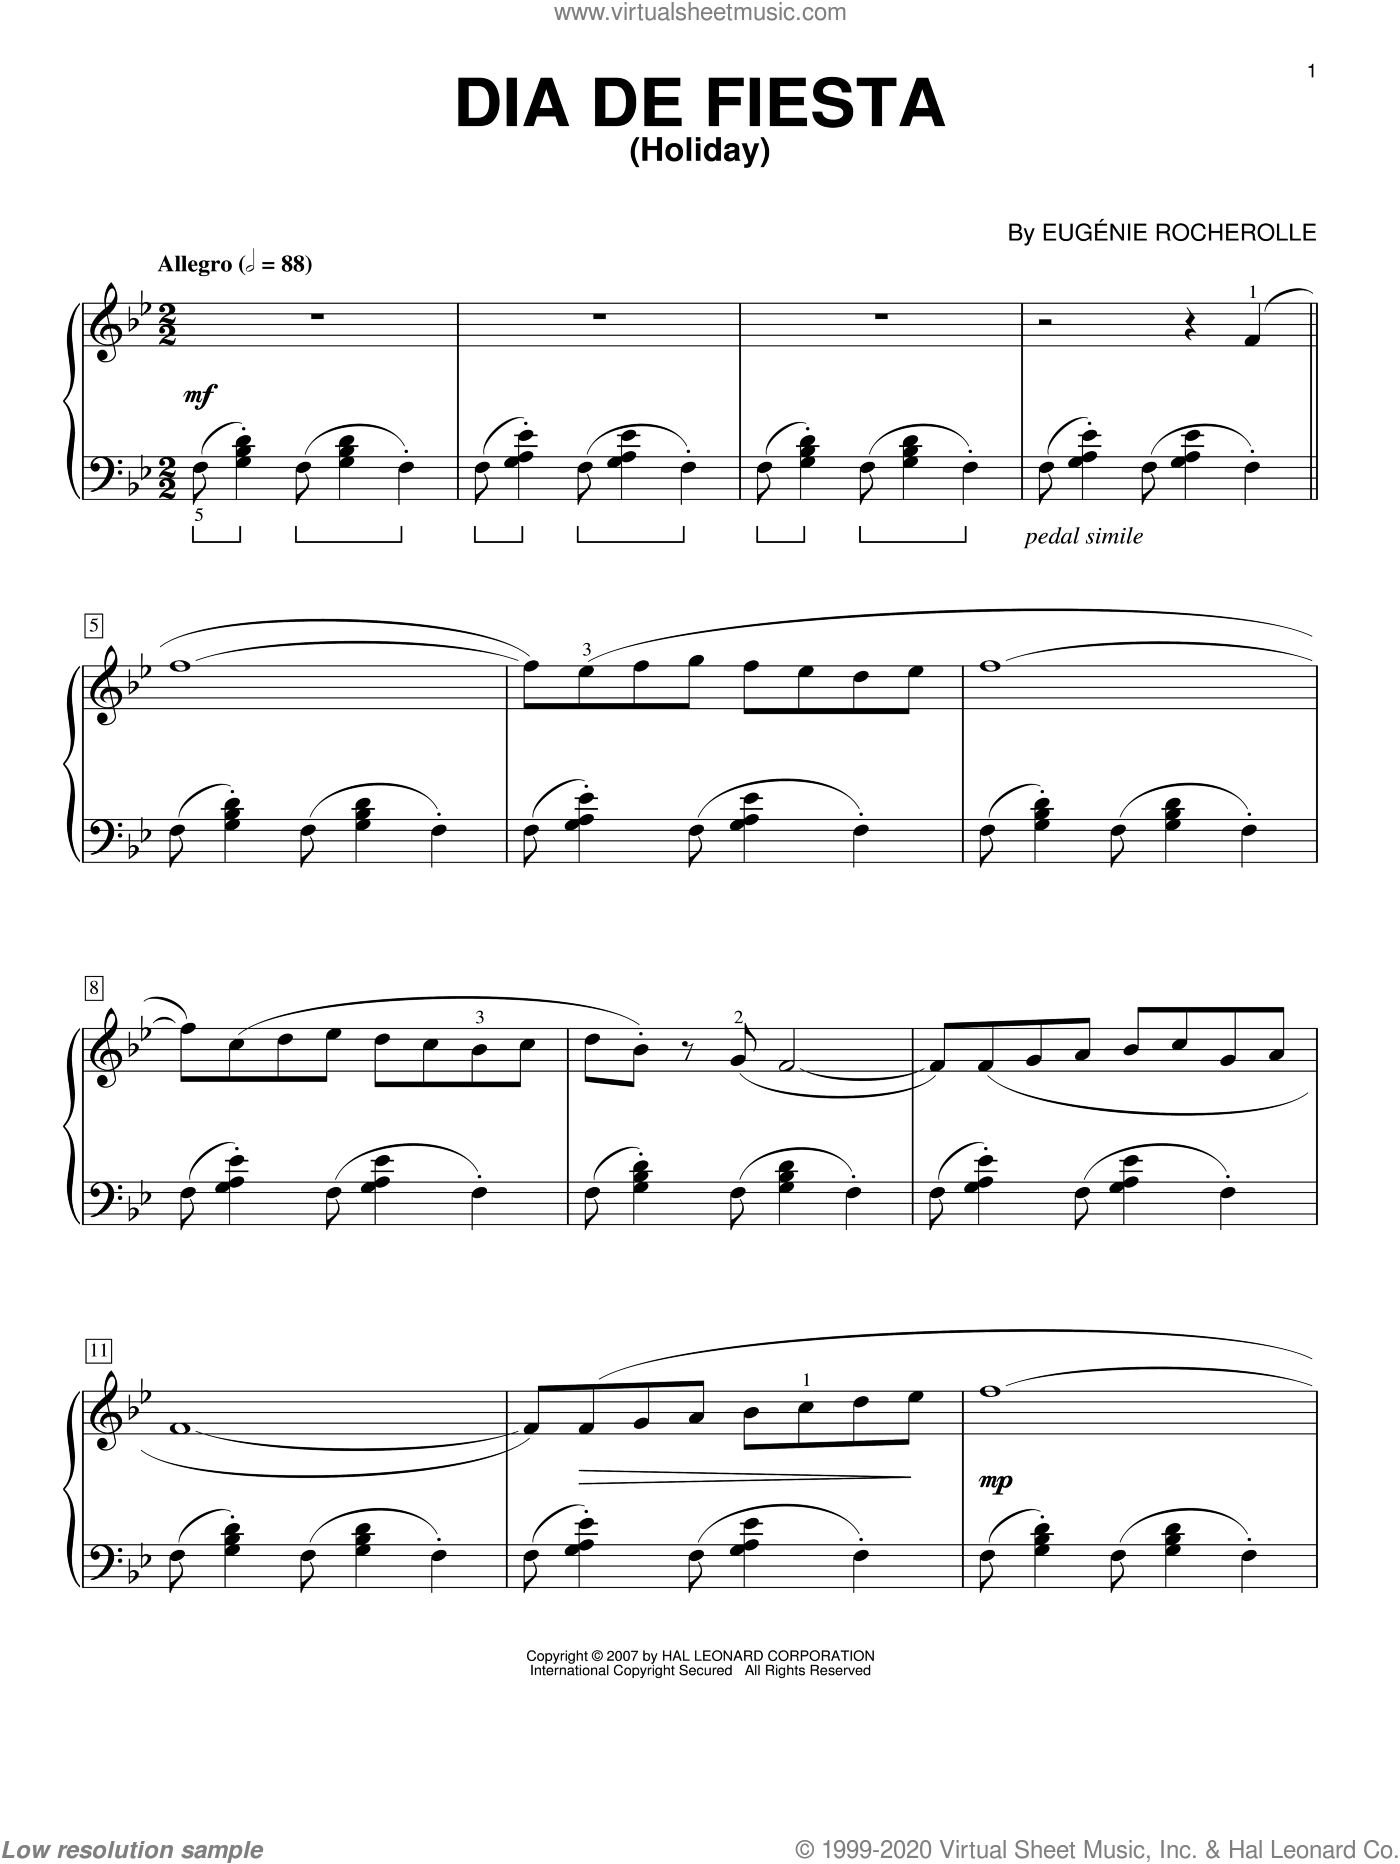 Dia De Fiesta (Holiday) sheet music for piano solo by Eugénie Rocherolle and Eugenie Rocherolle, intermediate piano. Score Image Preview.